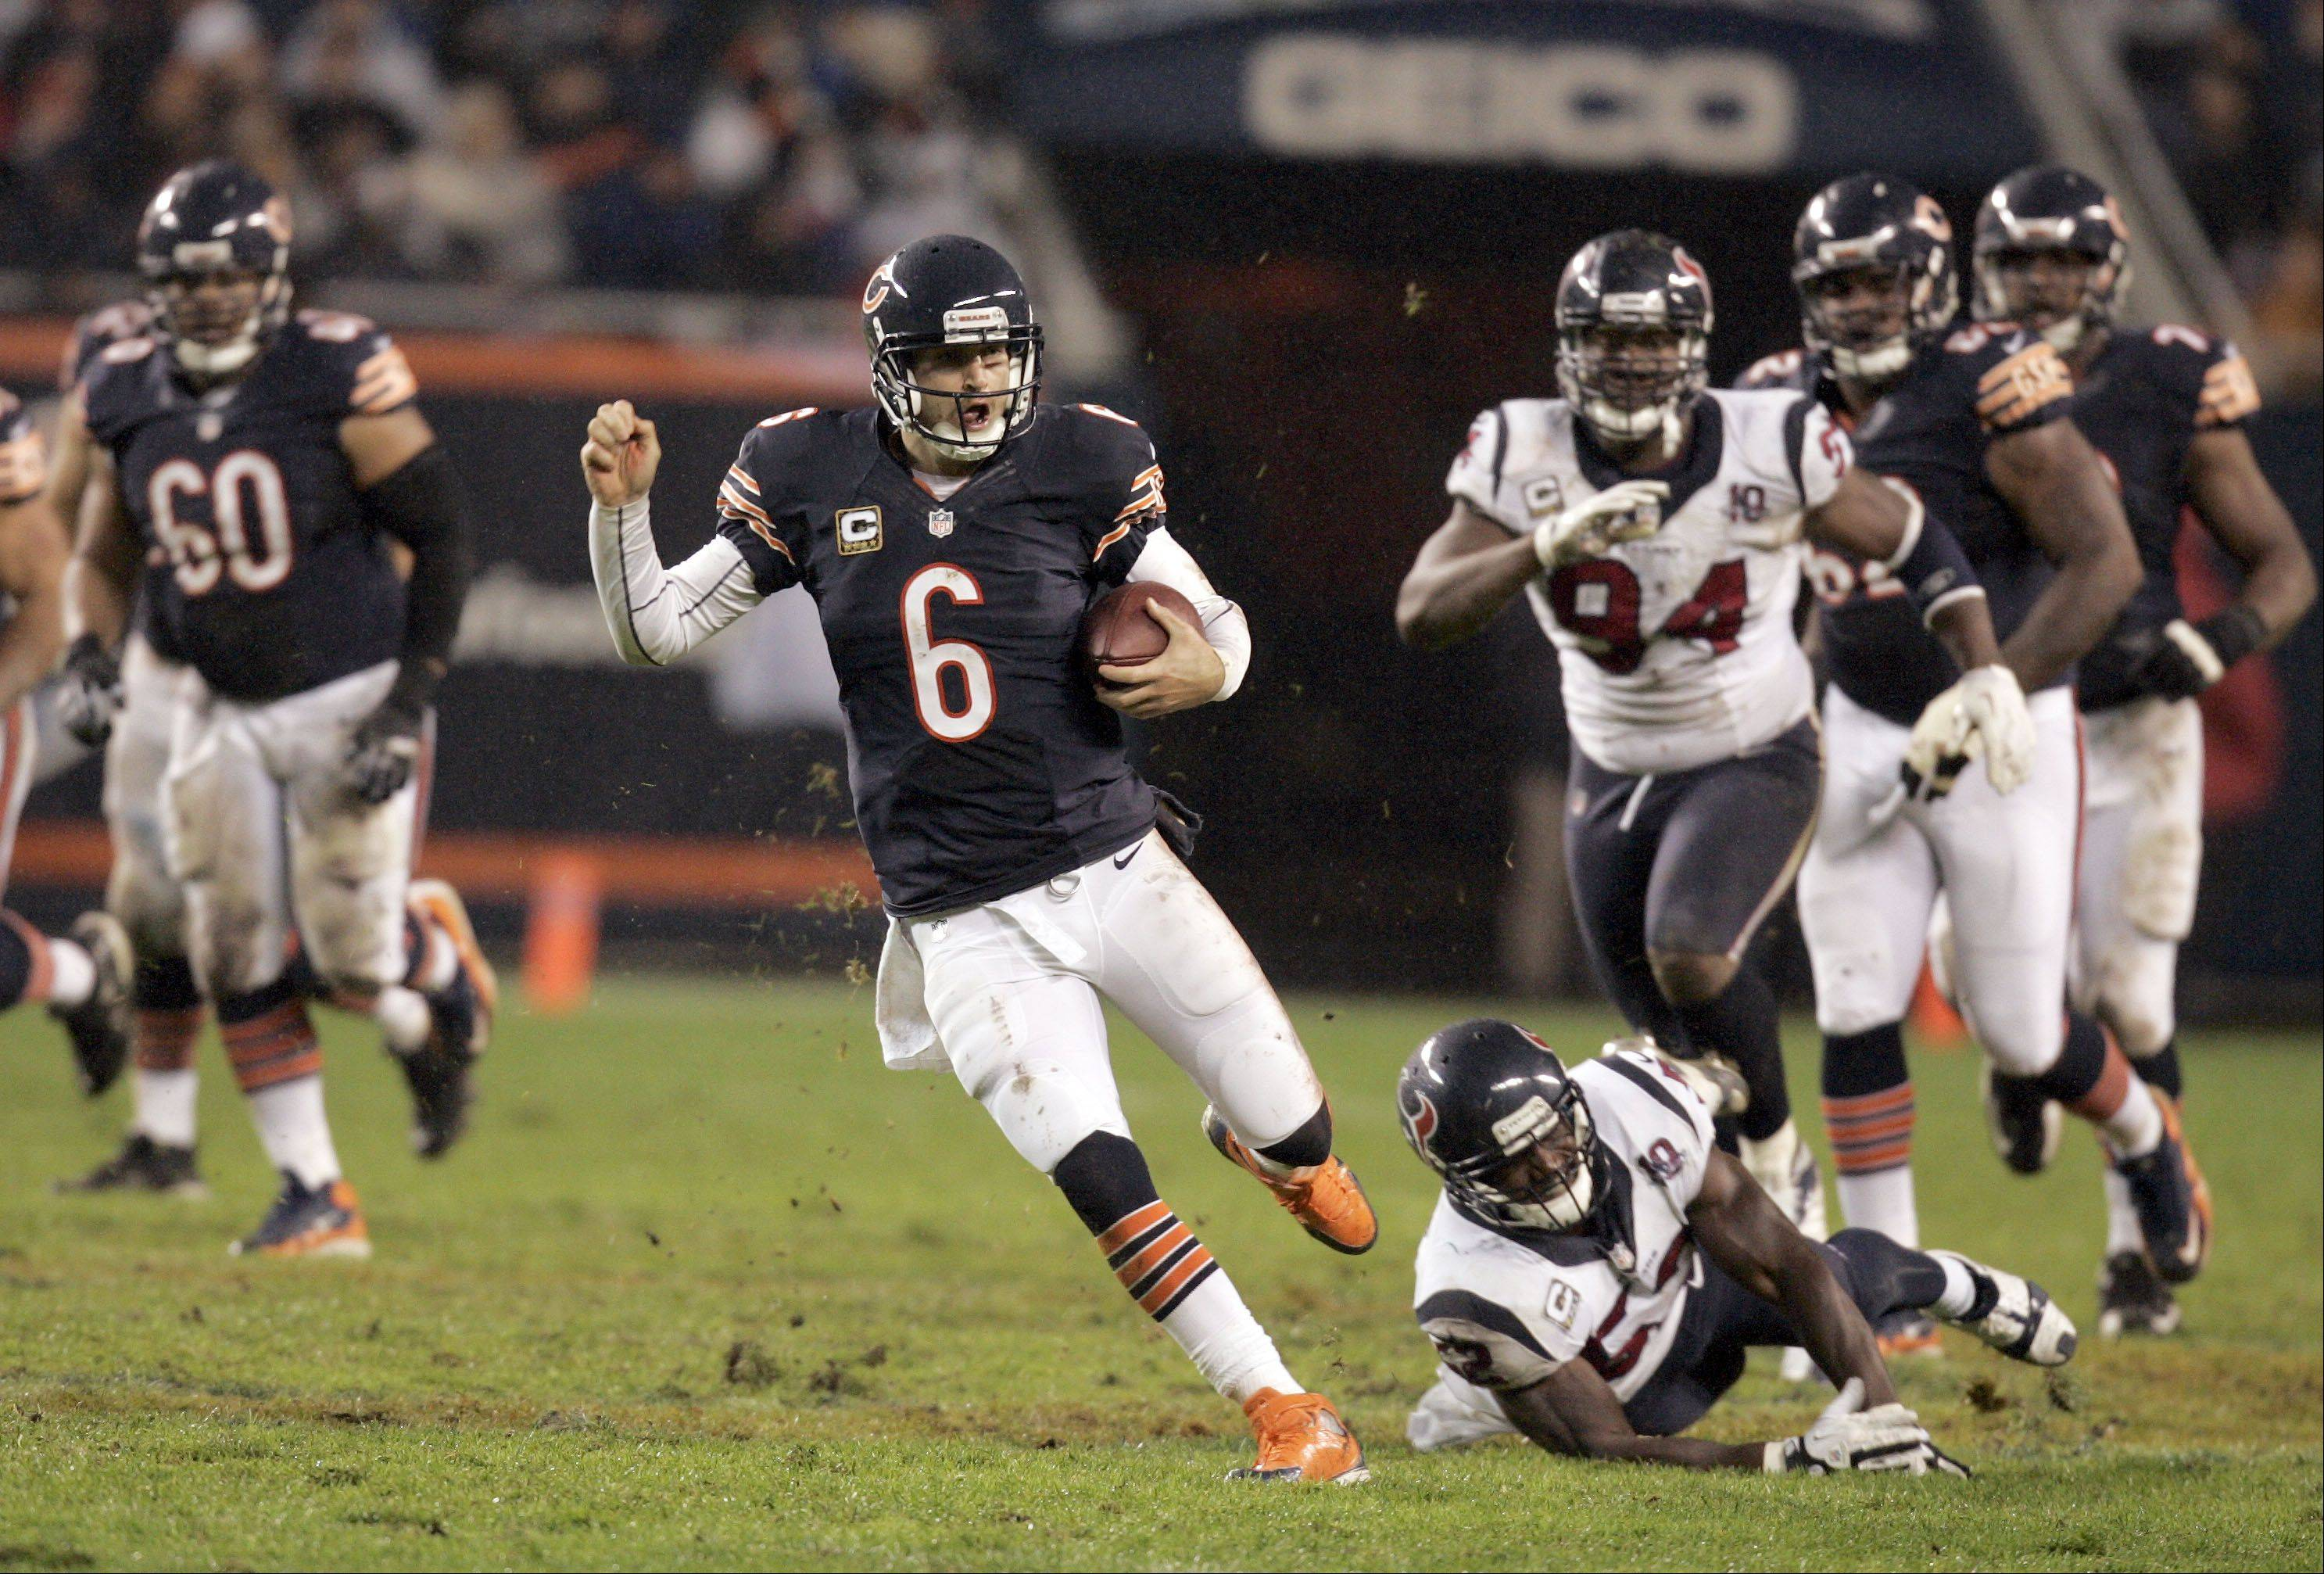 Chicago Bears quarterback Jay Cutler (6) gains some yards in the second quarter during the game.